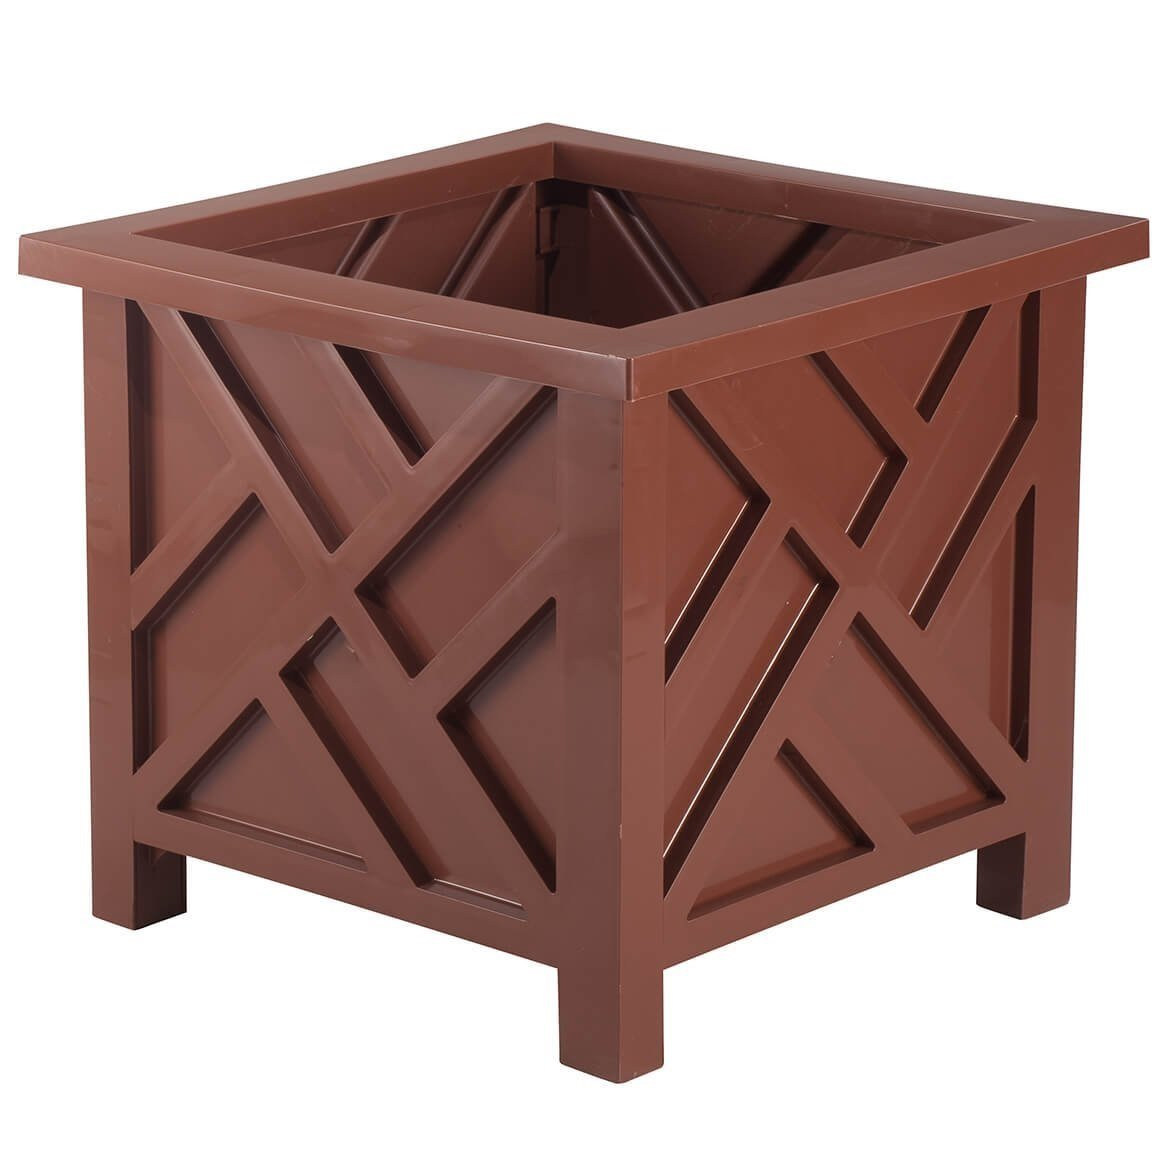 Chippendale Planter | Container Box for Garden, Patio, and Lawn Outdoor Decor | Red | By Trenton Gifts